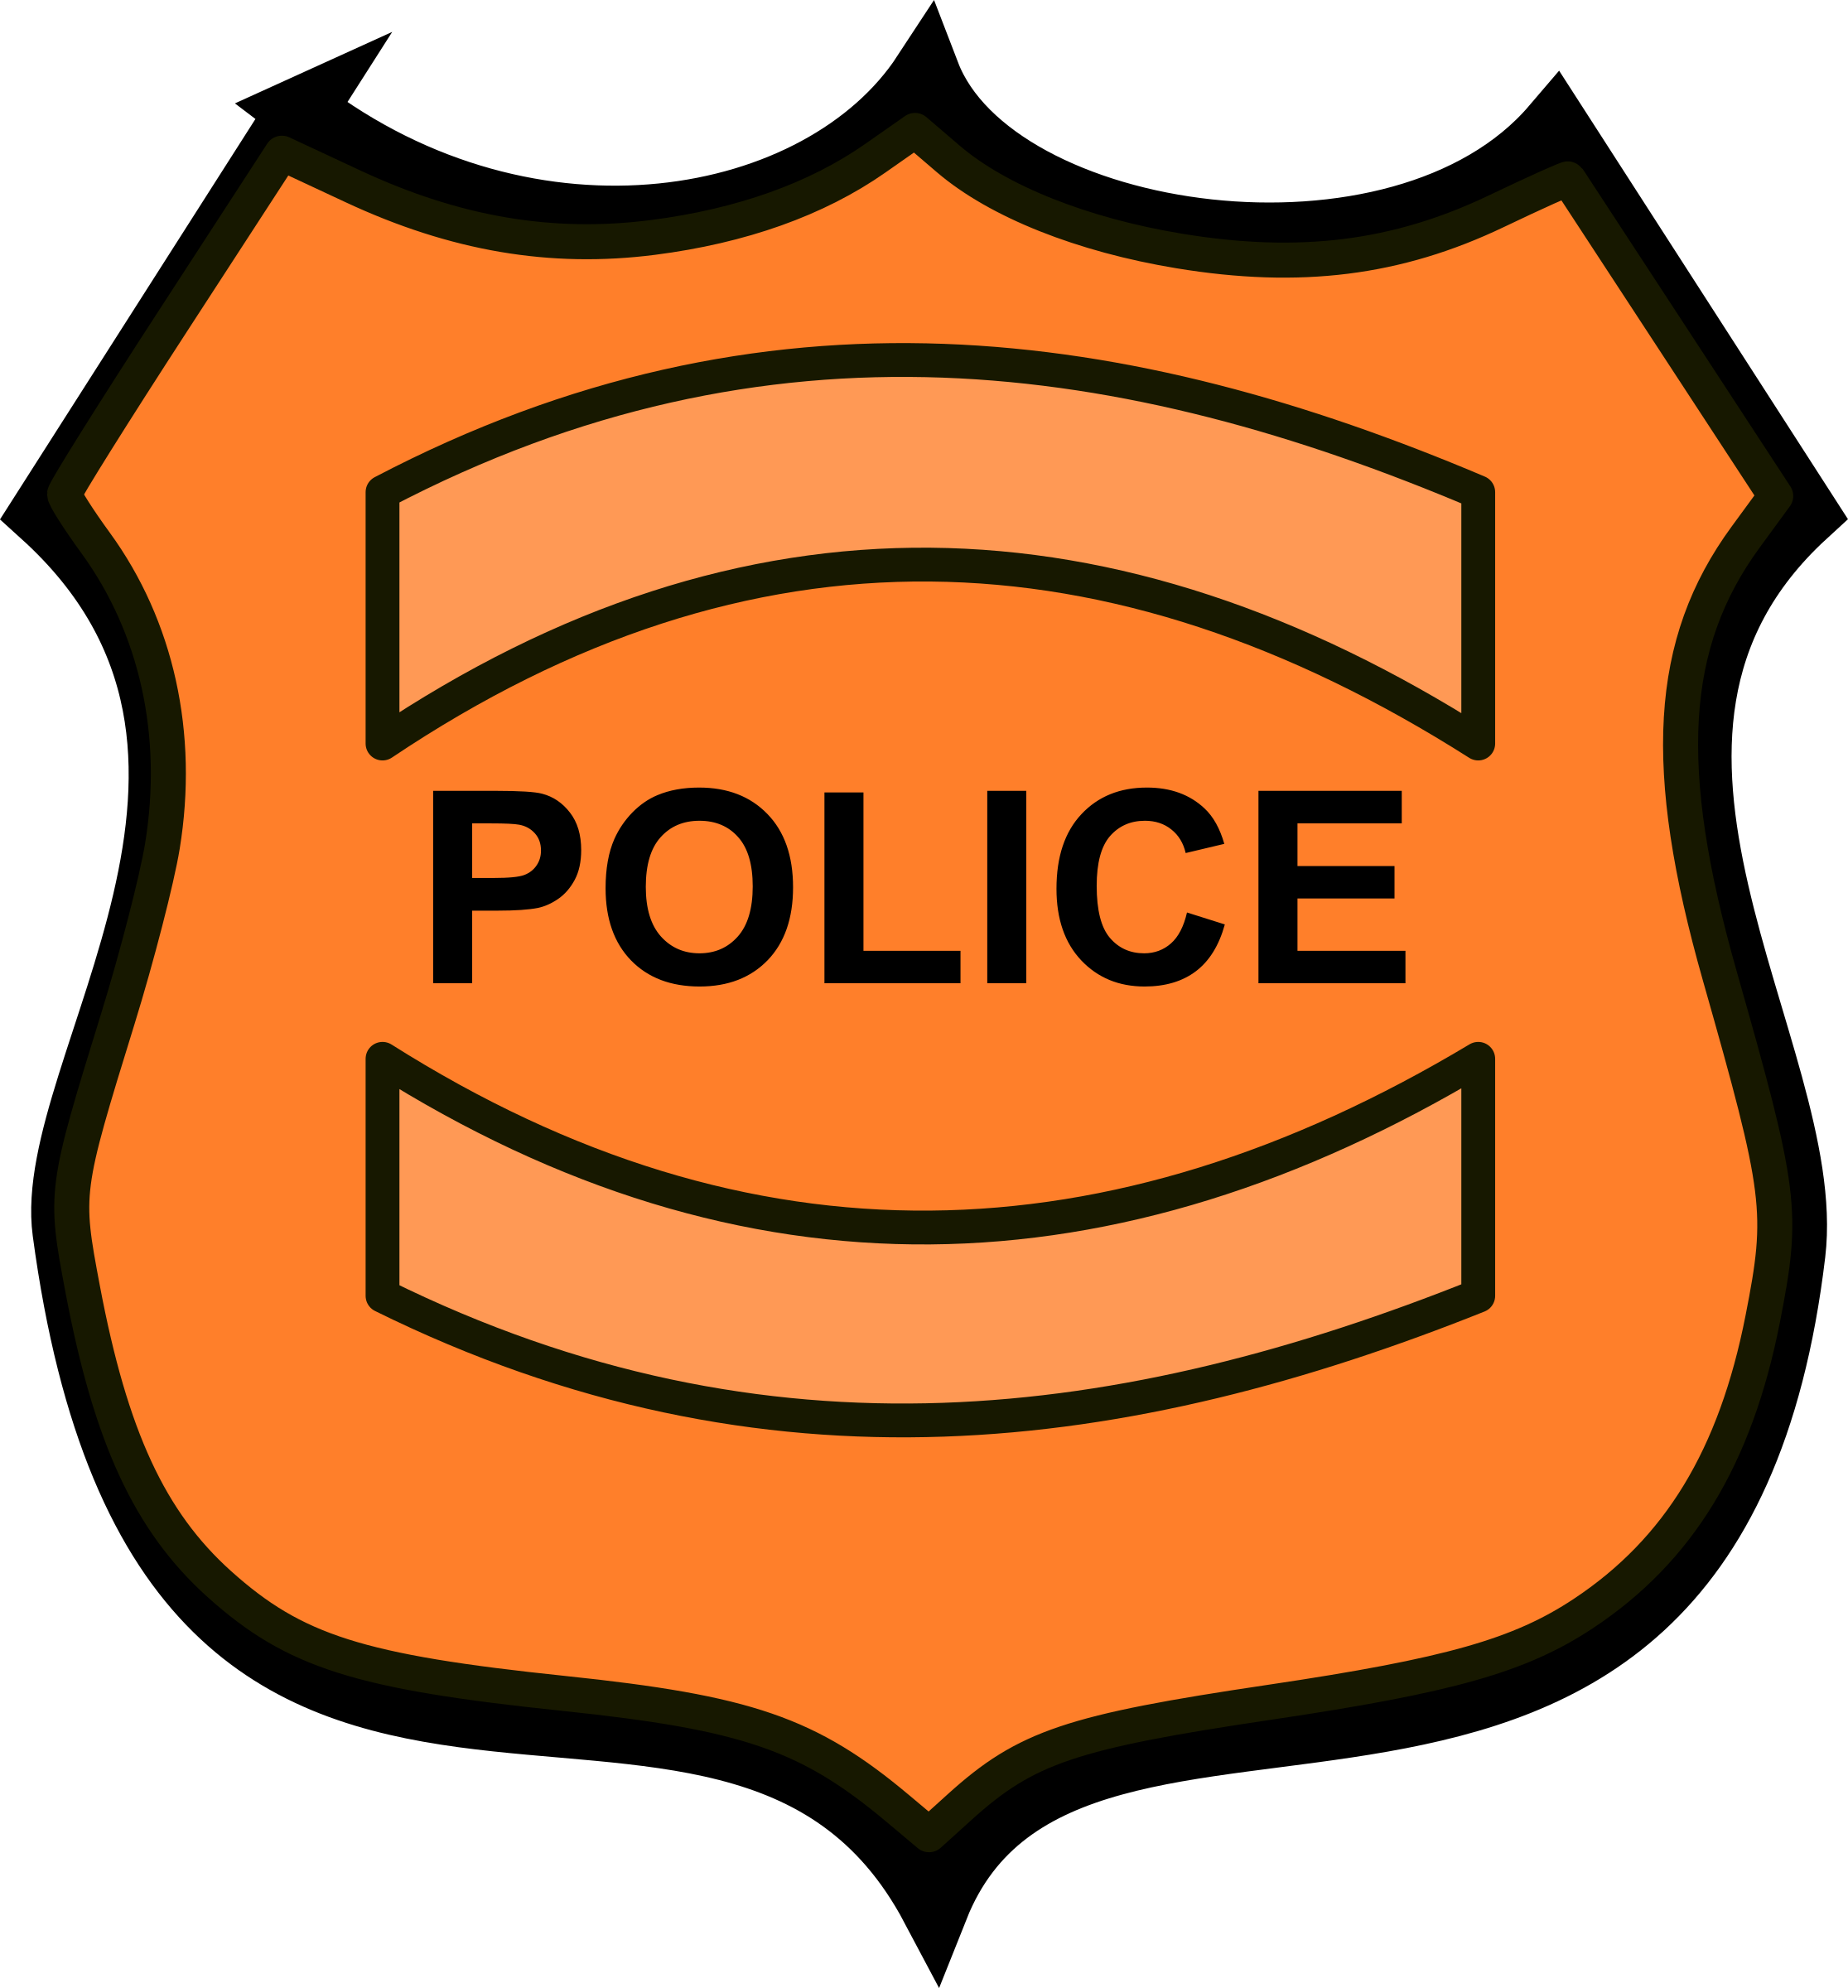 clipart transparent stock Police badge big image. Marquee clipart.